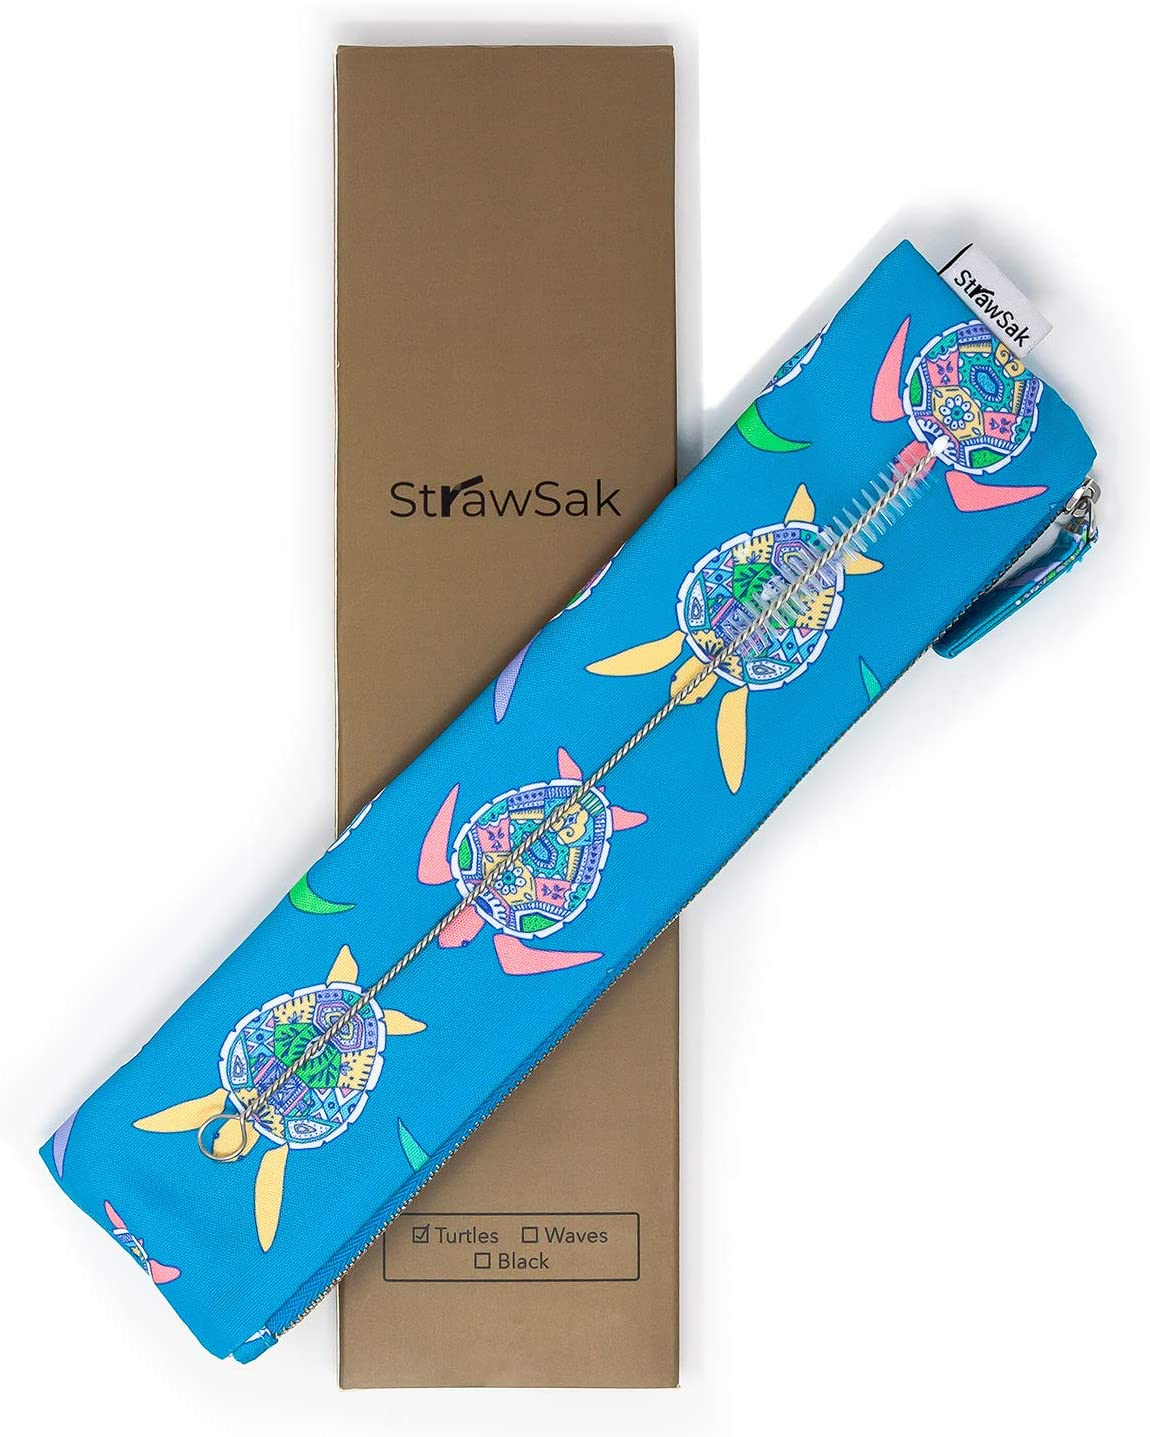 Straw Case for Reusable Straws (Metal Straws, Silicone Straws, Glass Straws), Cutlery, Silverware, Utensils - Easy to Clean Reusable Straw Pouch - Teal Turtles - 10.5 inch - by StrawSak